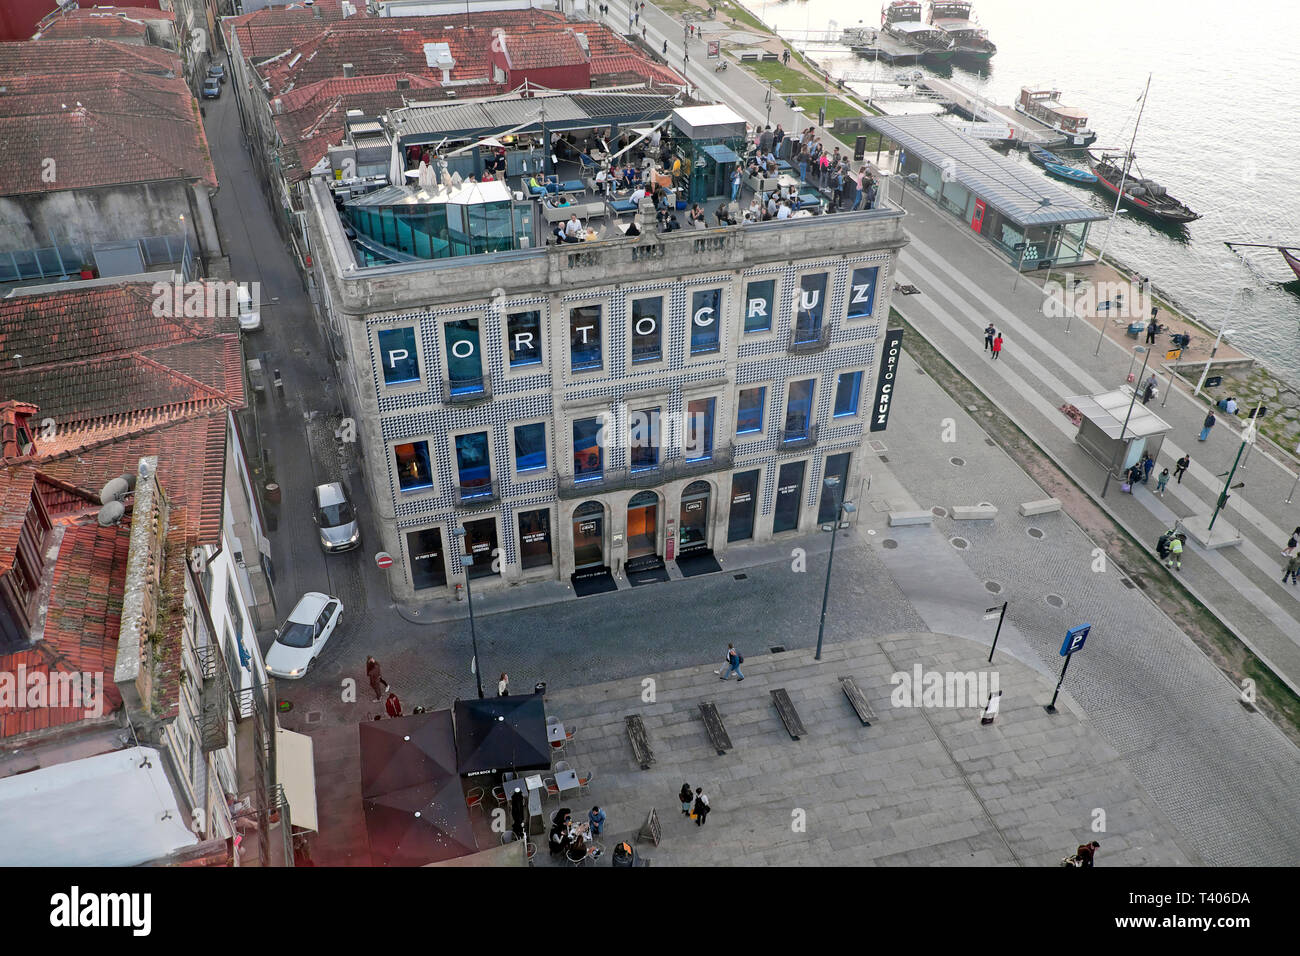 Aerial view of people on the Espaco Porto Cruz rooftop restaurant terrace Vila Nova de Gaia from the cable car in Porto Portugal Europe  KATHY DEWITT - Stock Image